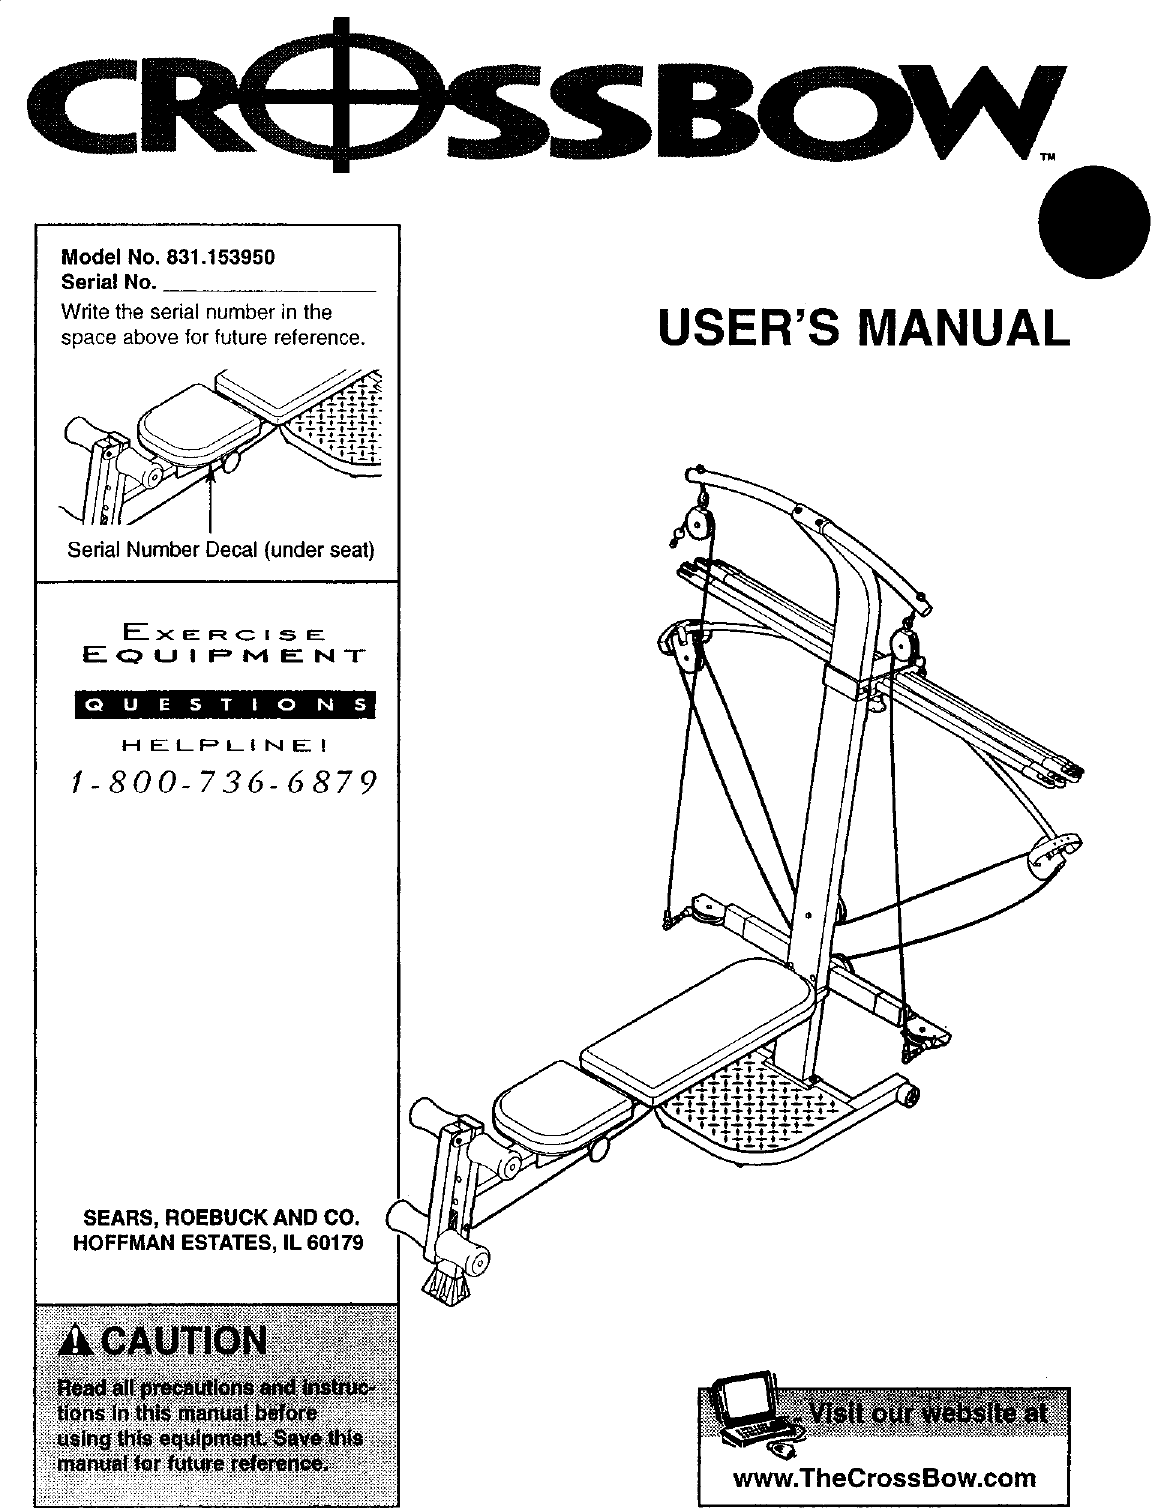 Weider 831153950 User Manual CROSSBOW Manuals And Guides